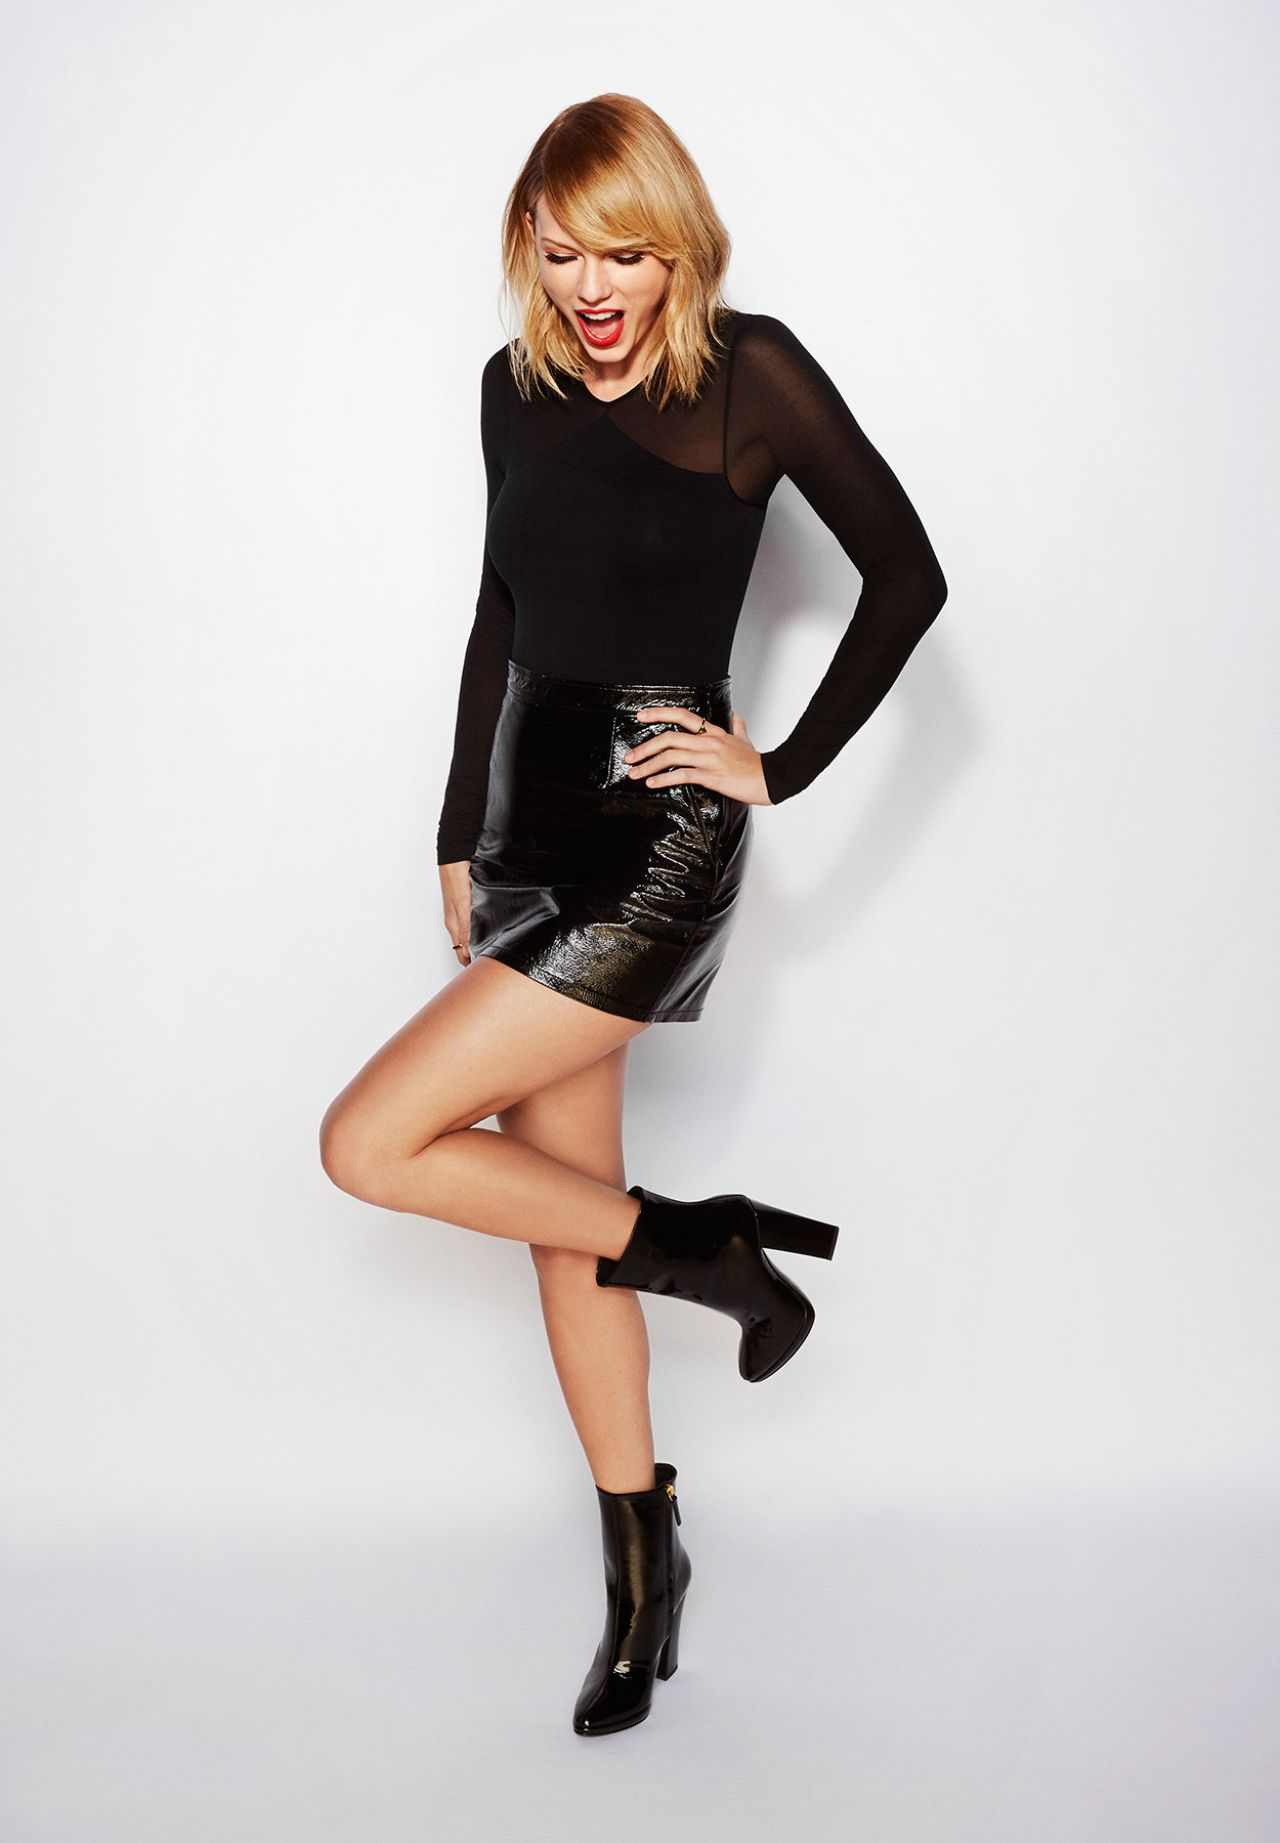 Taylor Swift Taylor Swift NOW December 2016 Photoshoot